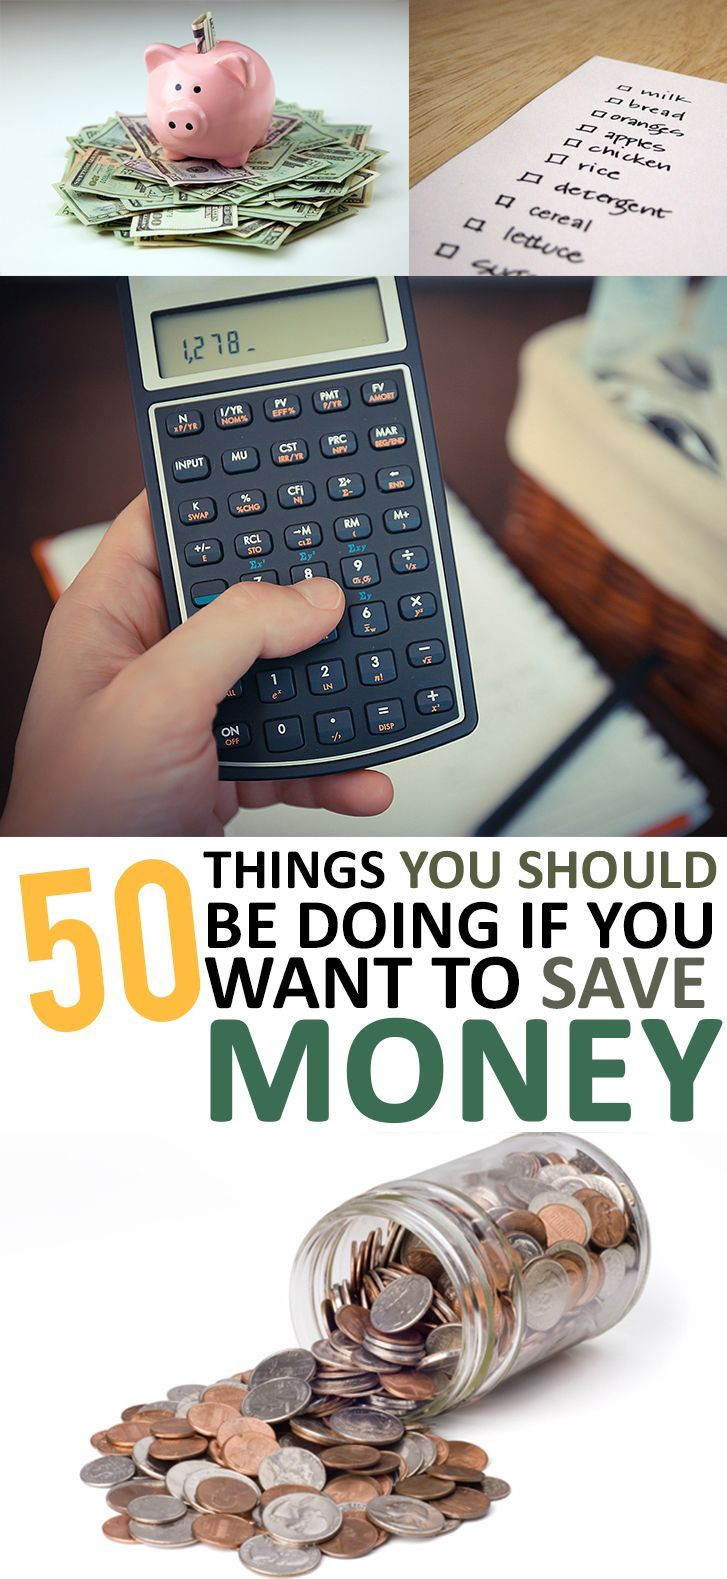 Easy Lifestyle changes and tips for saving money and living a frugal and prudent life.